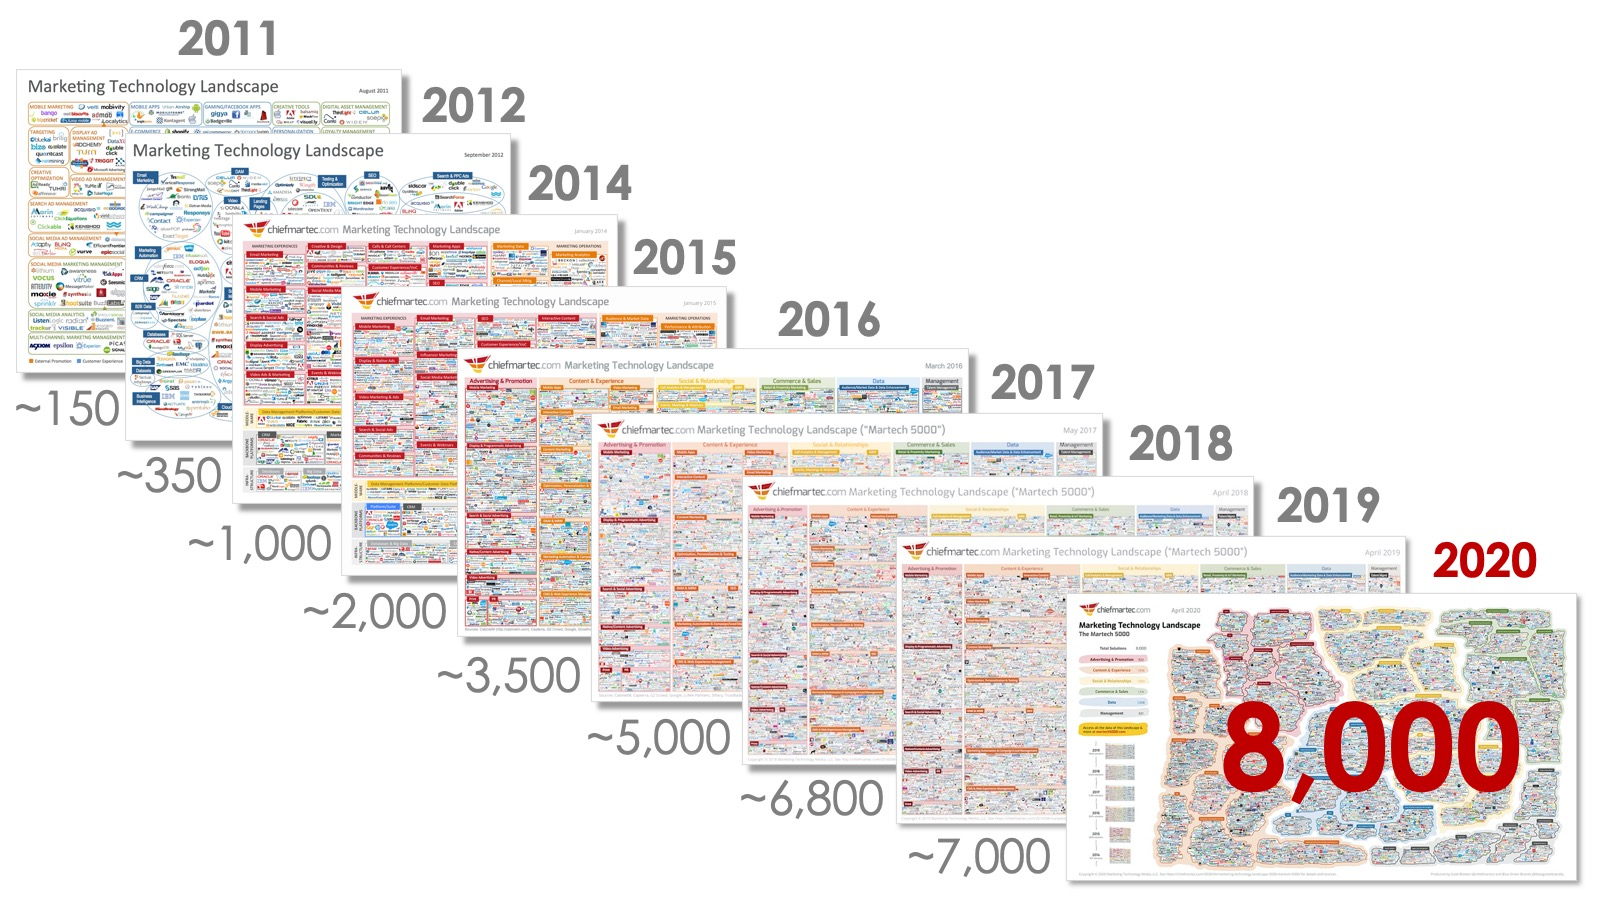 Martech over the years